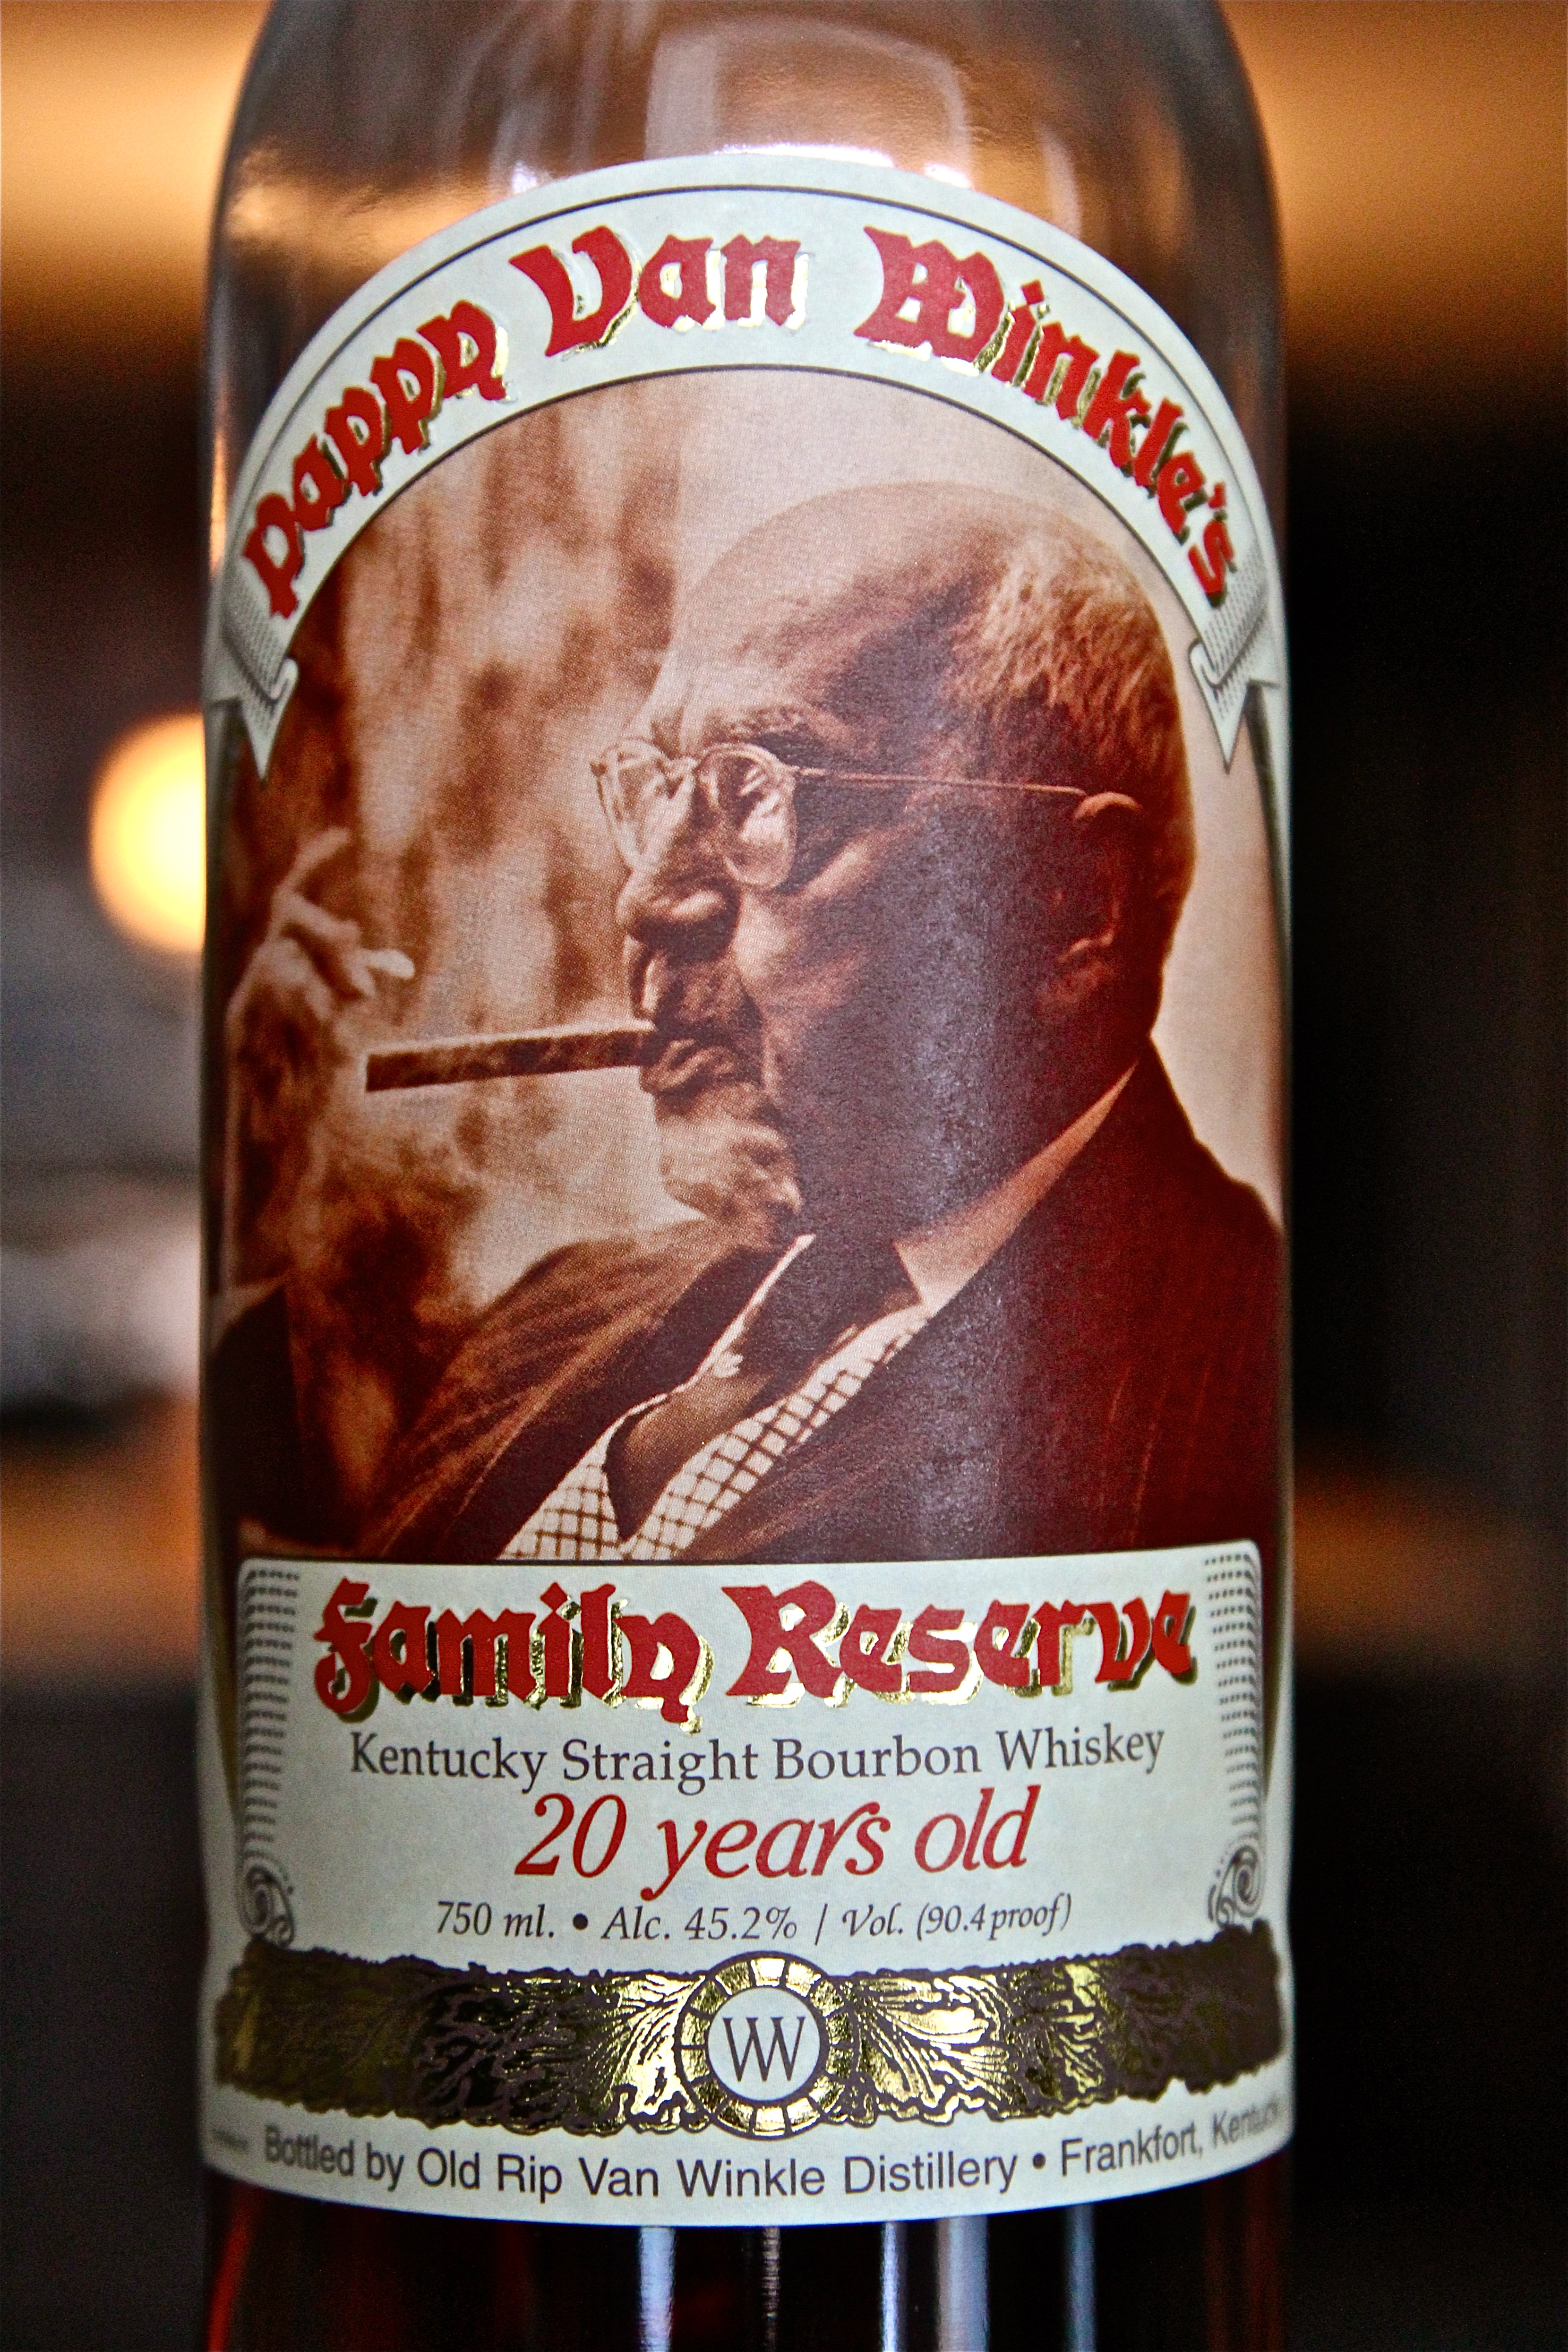 Pappy Van Winkle's Family Reserve 20 Year Old Kentucky